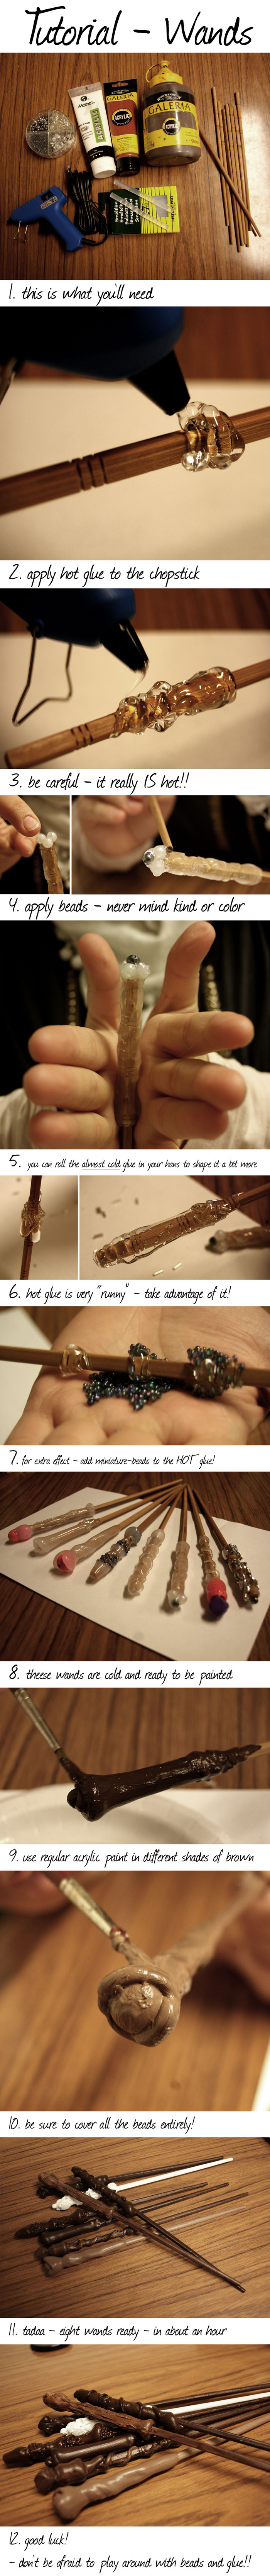 Wands - tutorial by majann